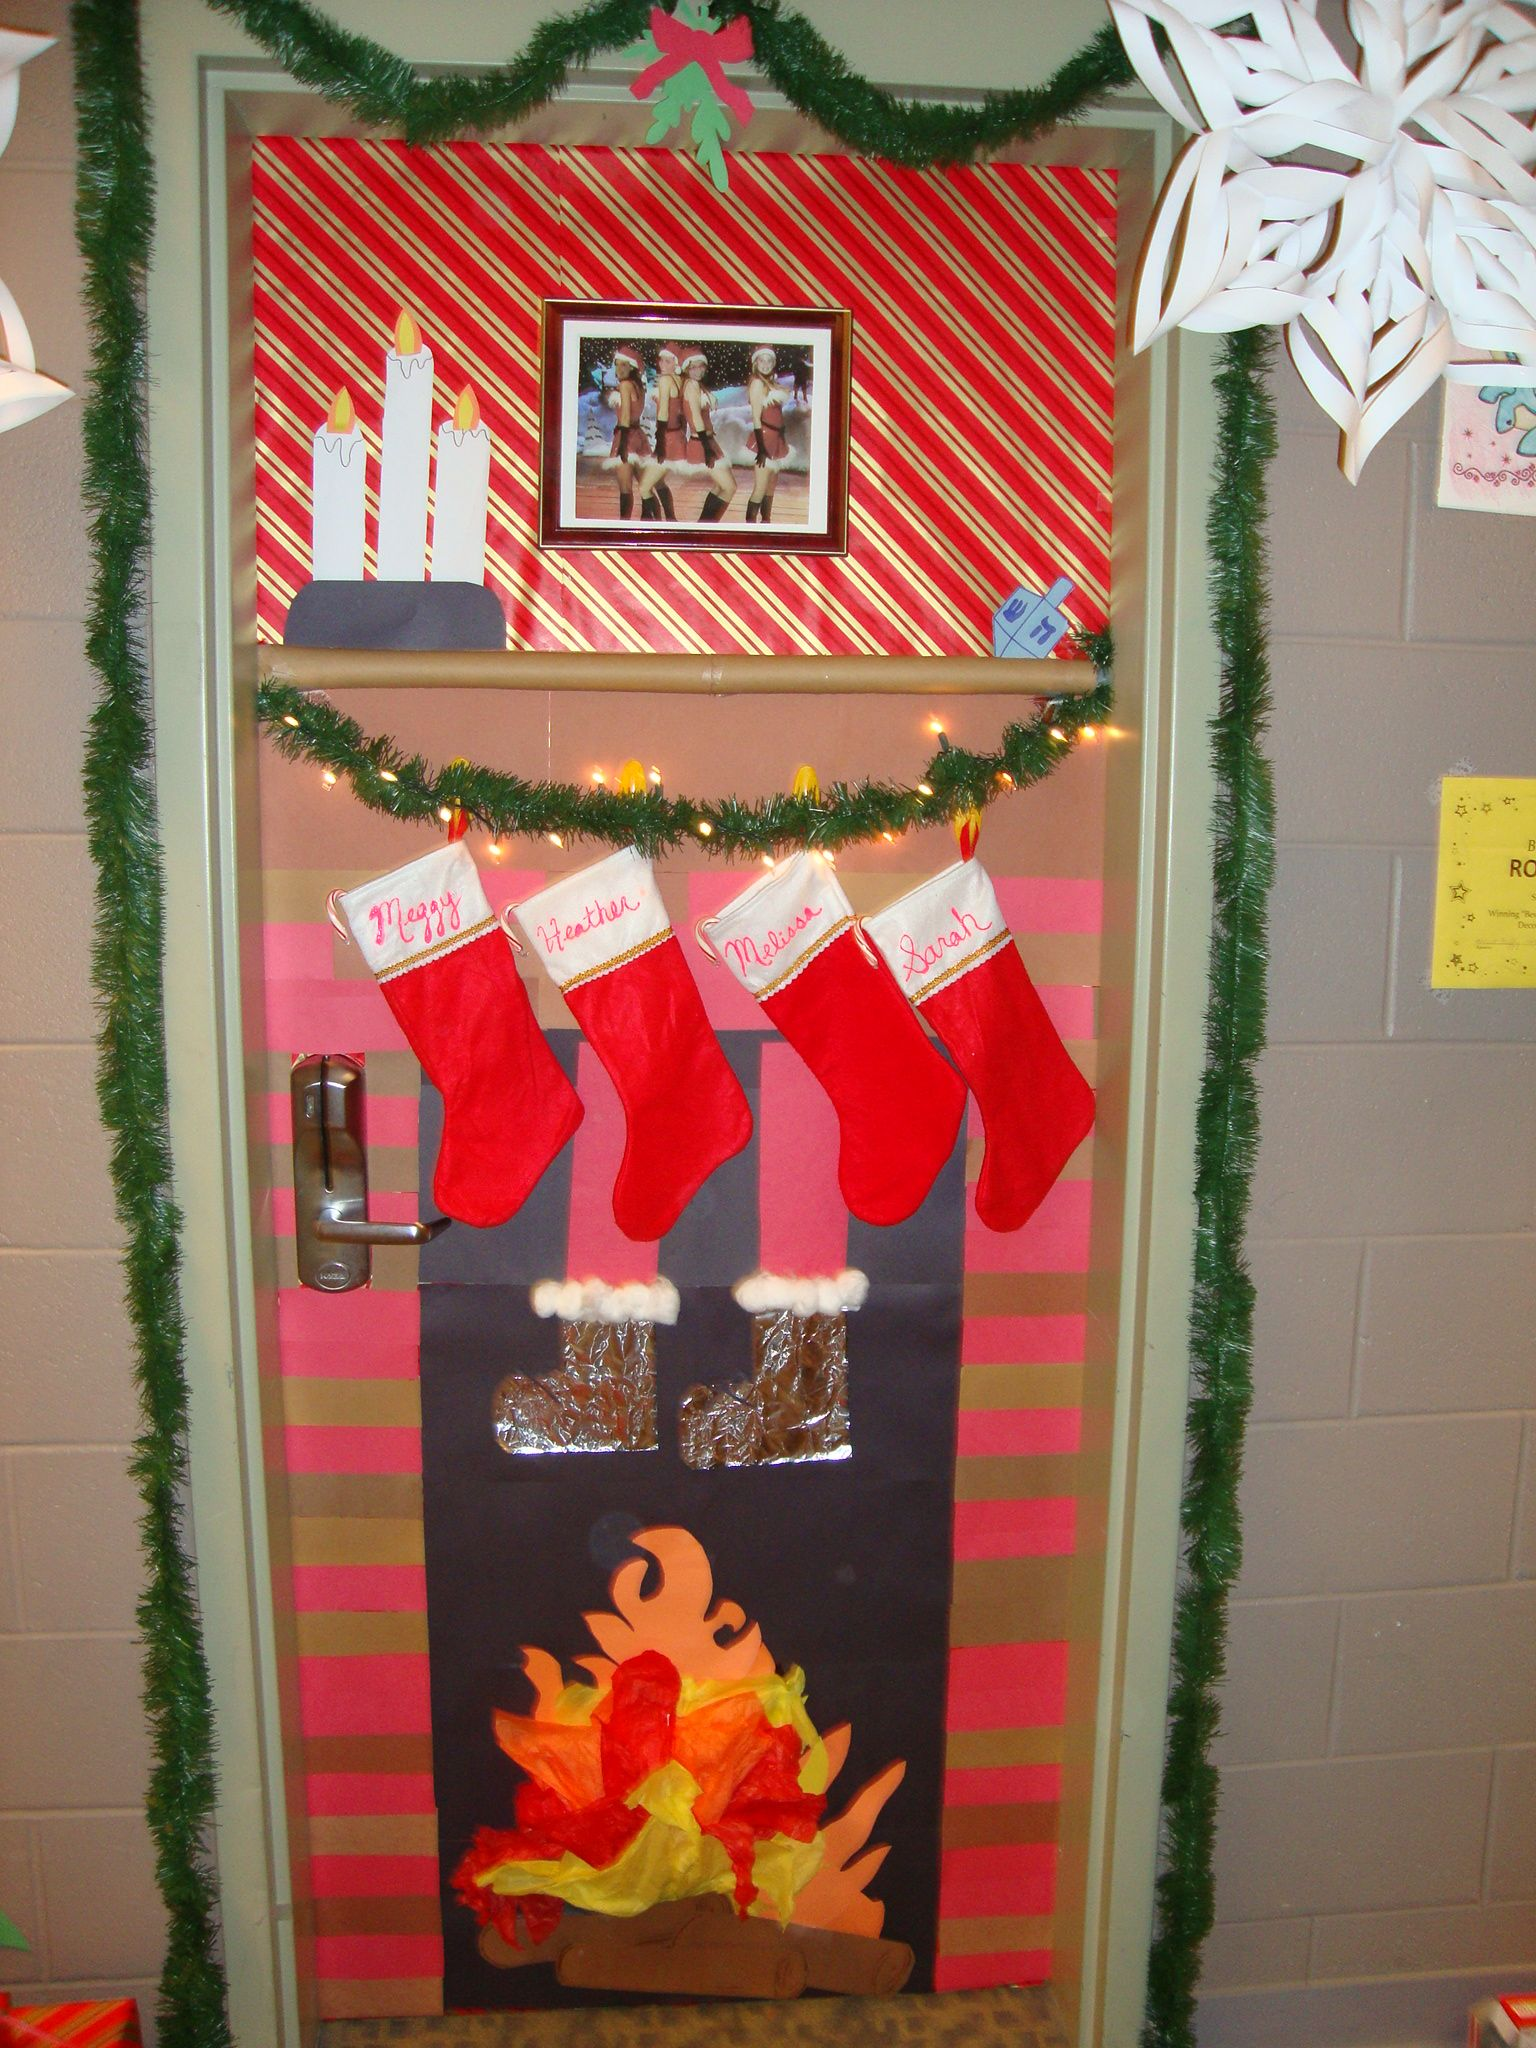 Pin By Heather On My Life As A Resident Assistant Christmas Door Decorating Contest Christmas Door Decorations Holiday Door Decorations